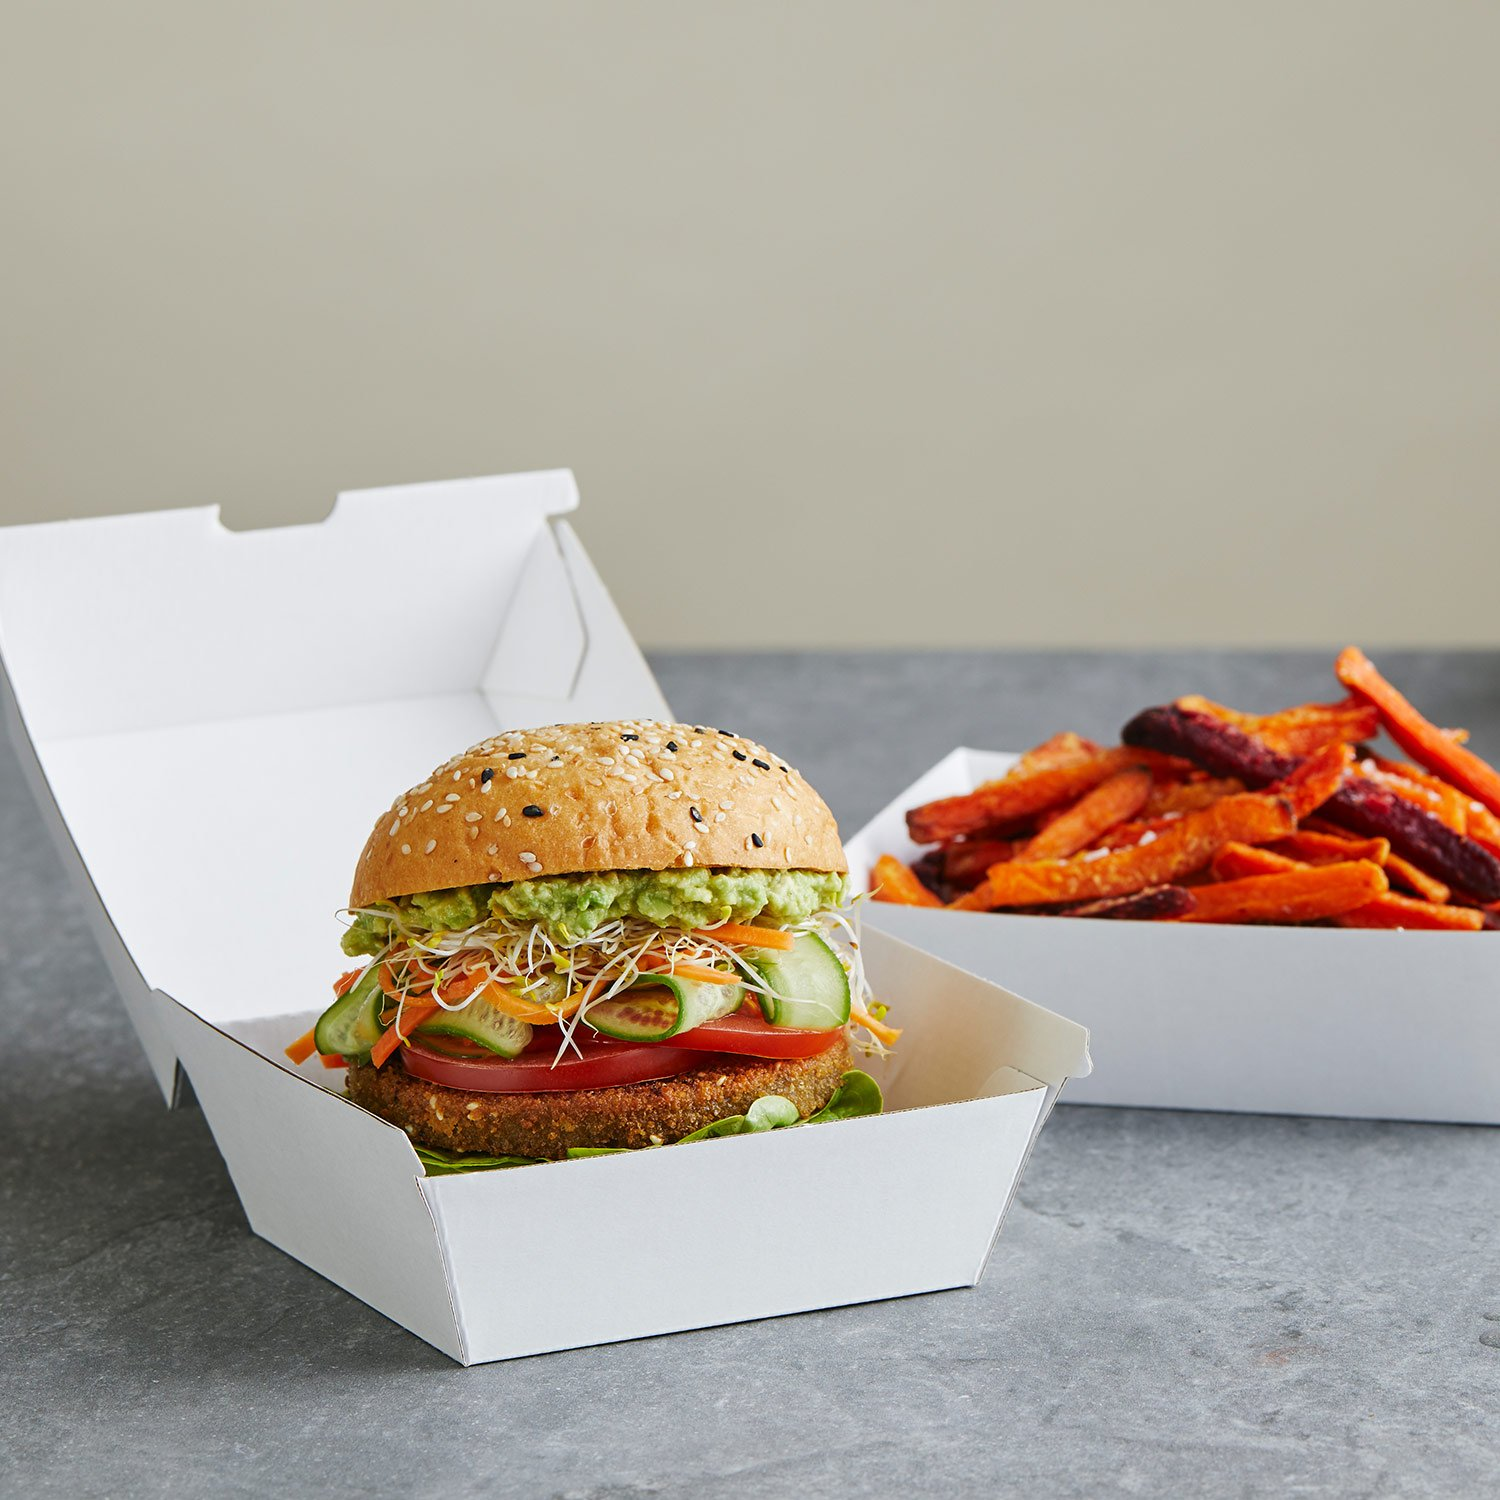 Image of Detpak's recyclable Endura Burger clam and tray